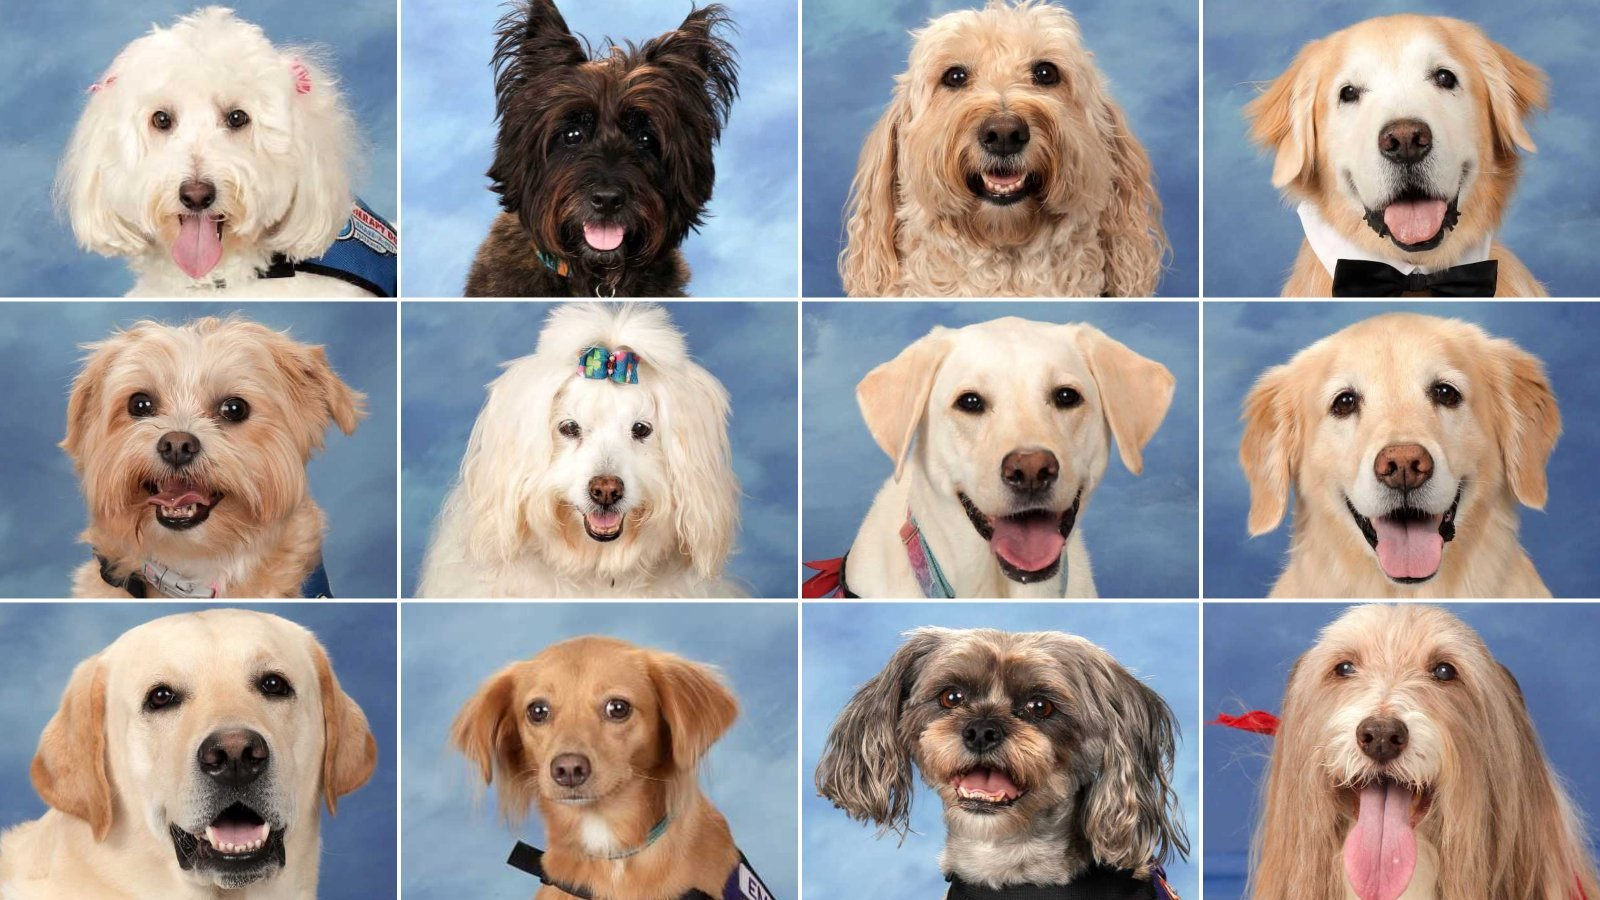 The 14 therapy dogs that have kept Marjory Stoneman Douglas High School students and staff company since last year's mass shooting are seen in school yearbook photos obtained by CNN.